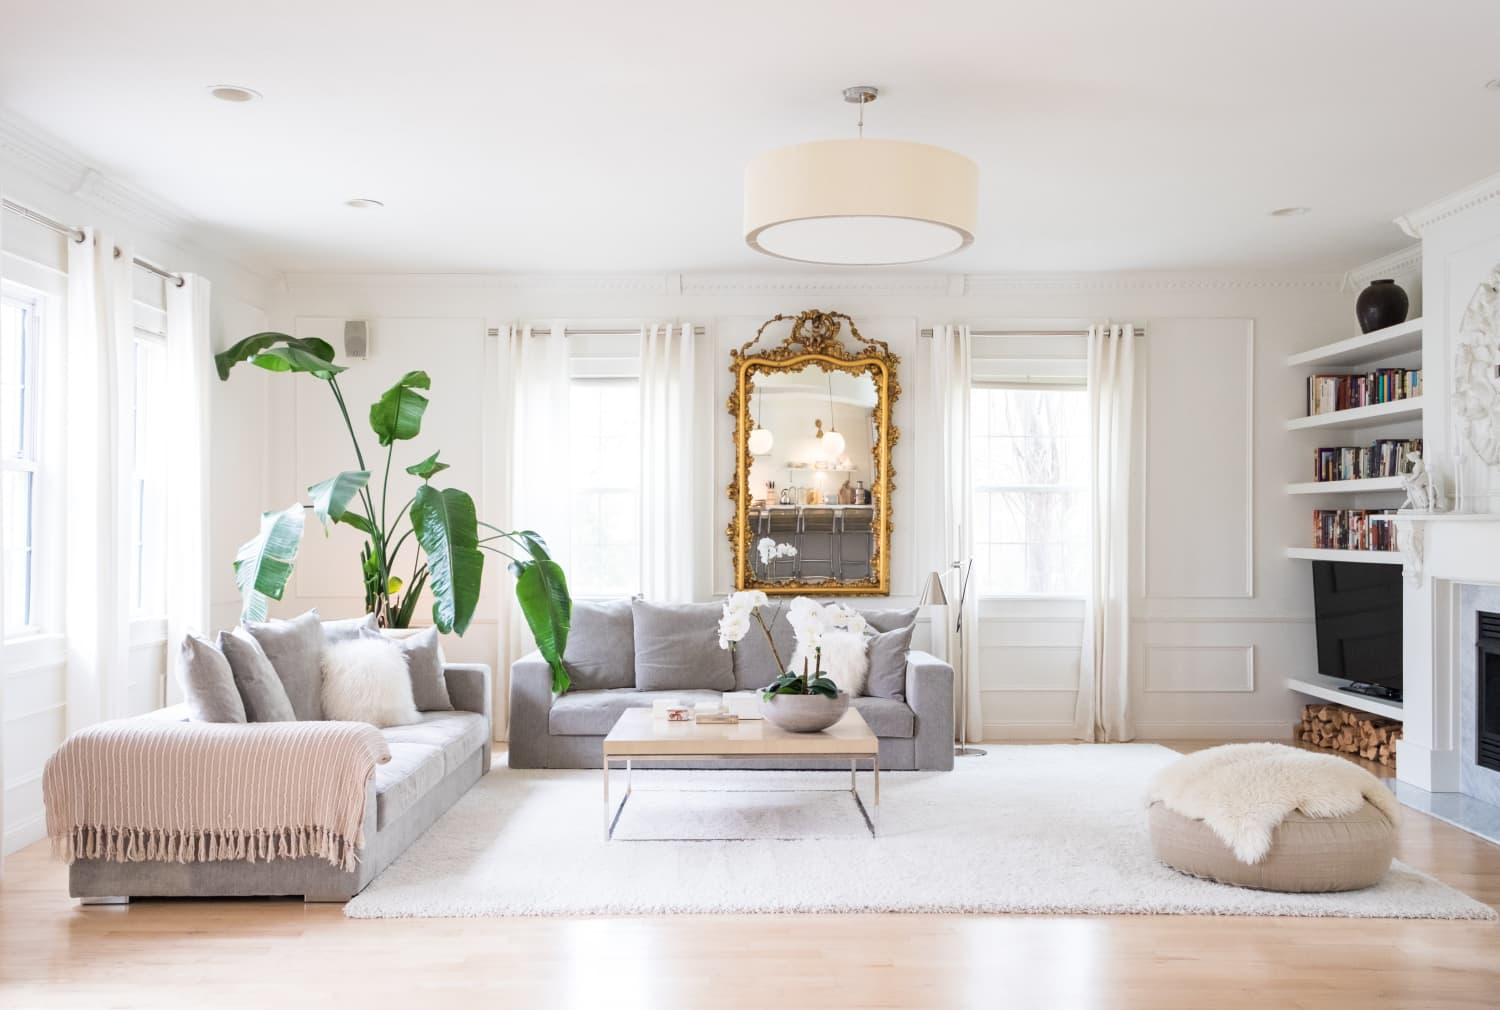 14 Designers Share Their Favorite Shades of White Paint